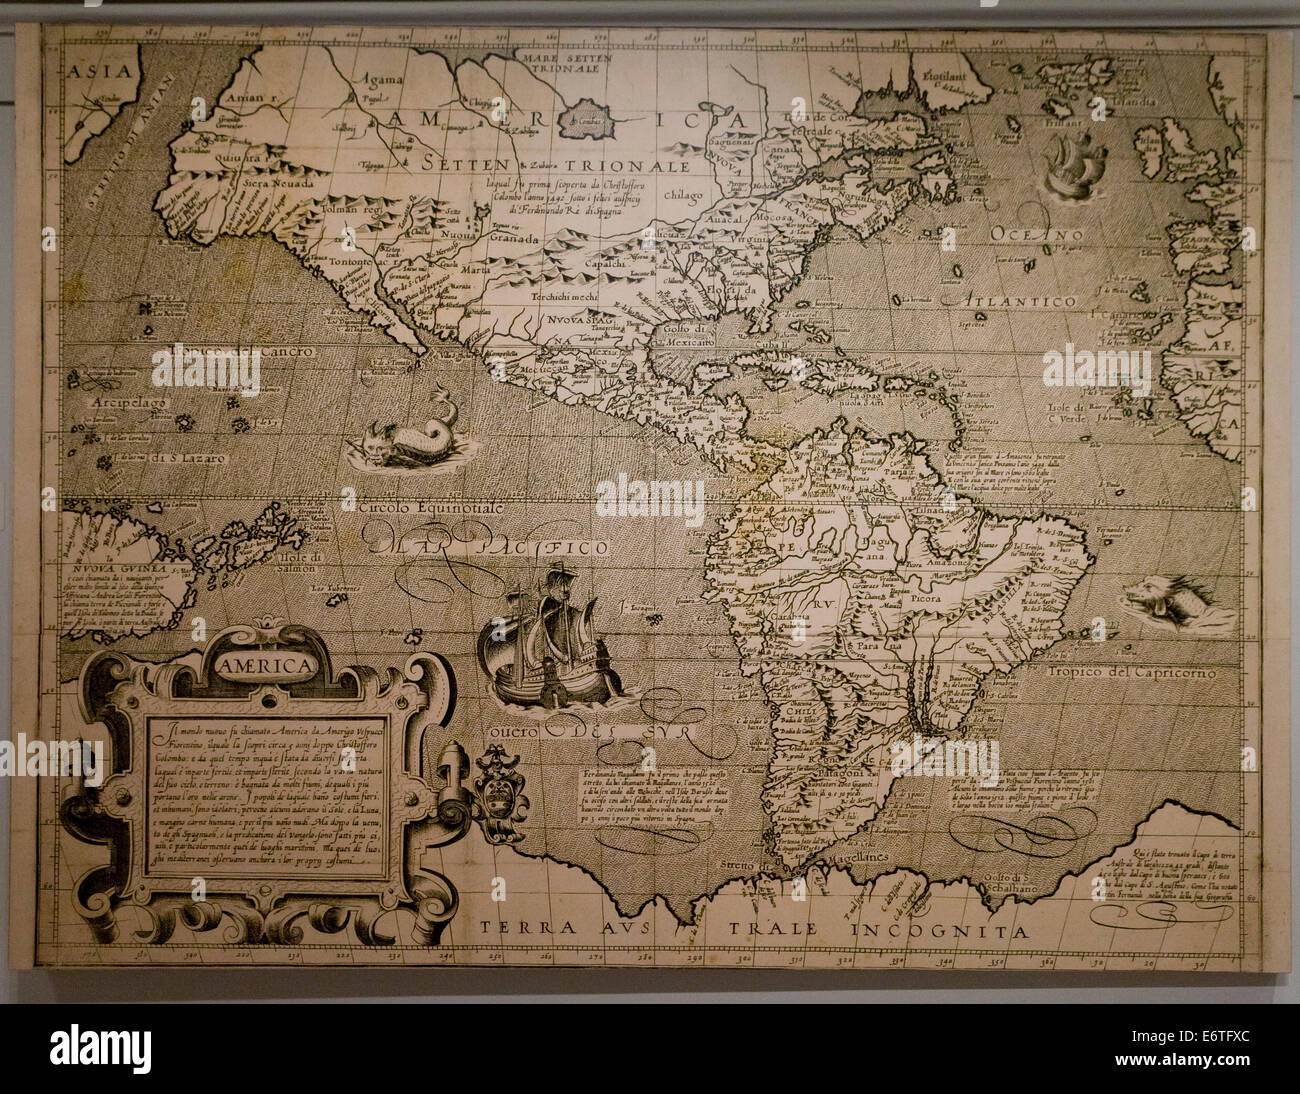 'America' by Arnoldo di Arnoldi, circa 1600 - Library of Congress, Washington, DC USA - Stock Image